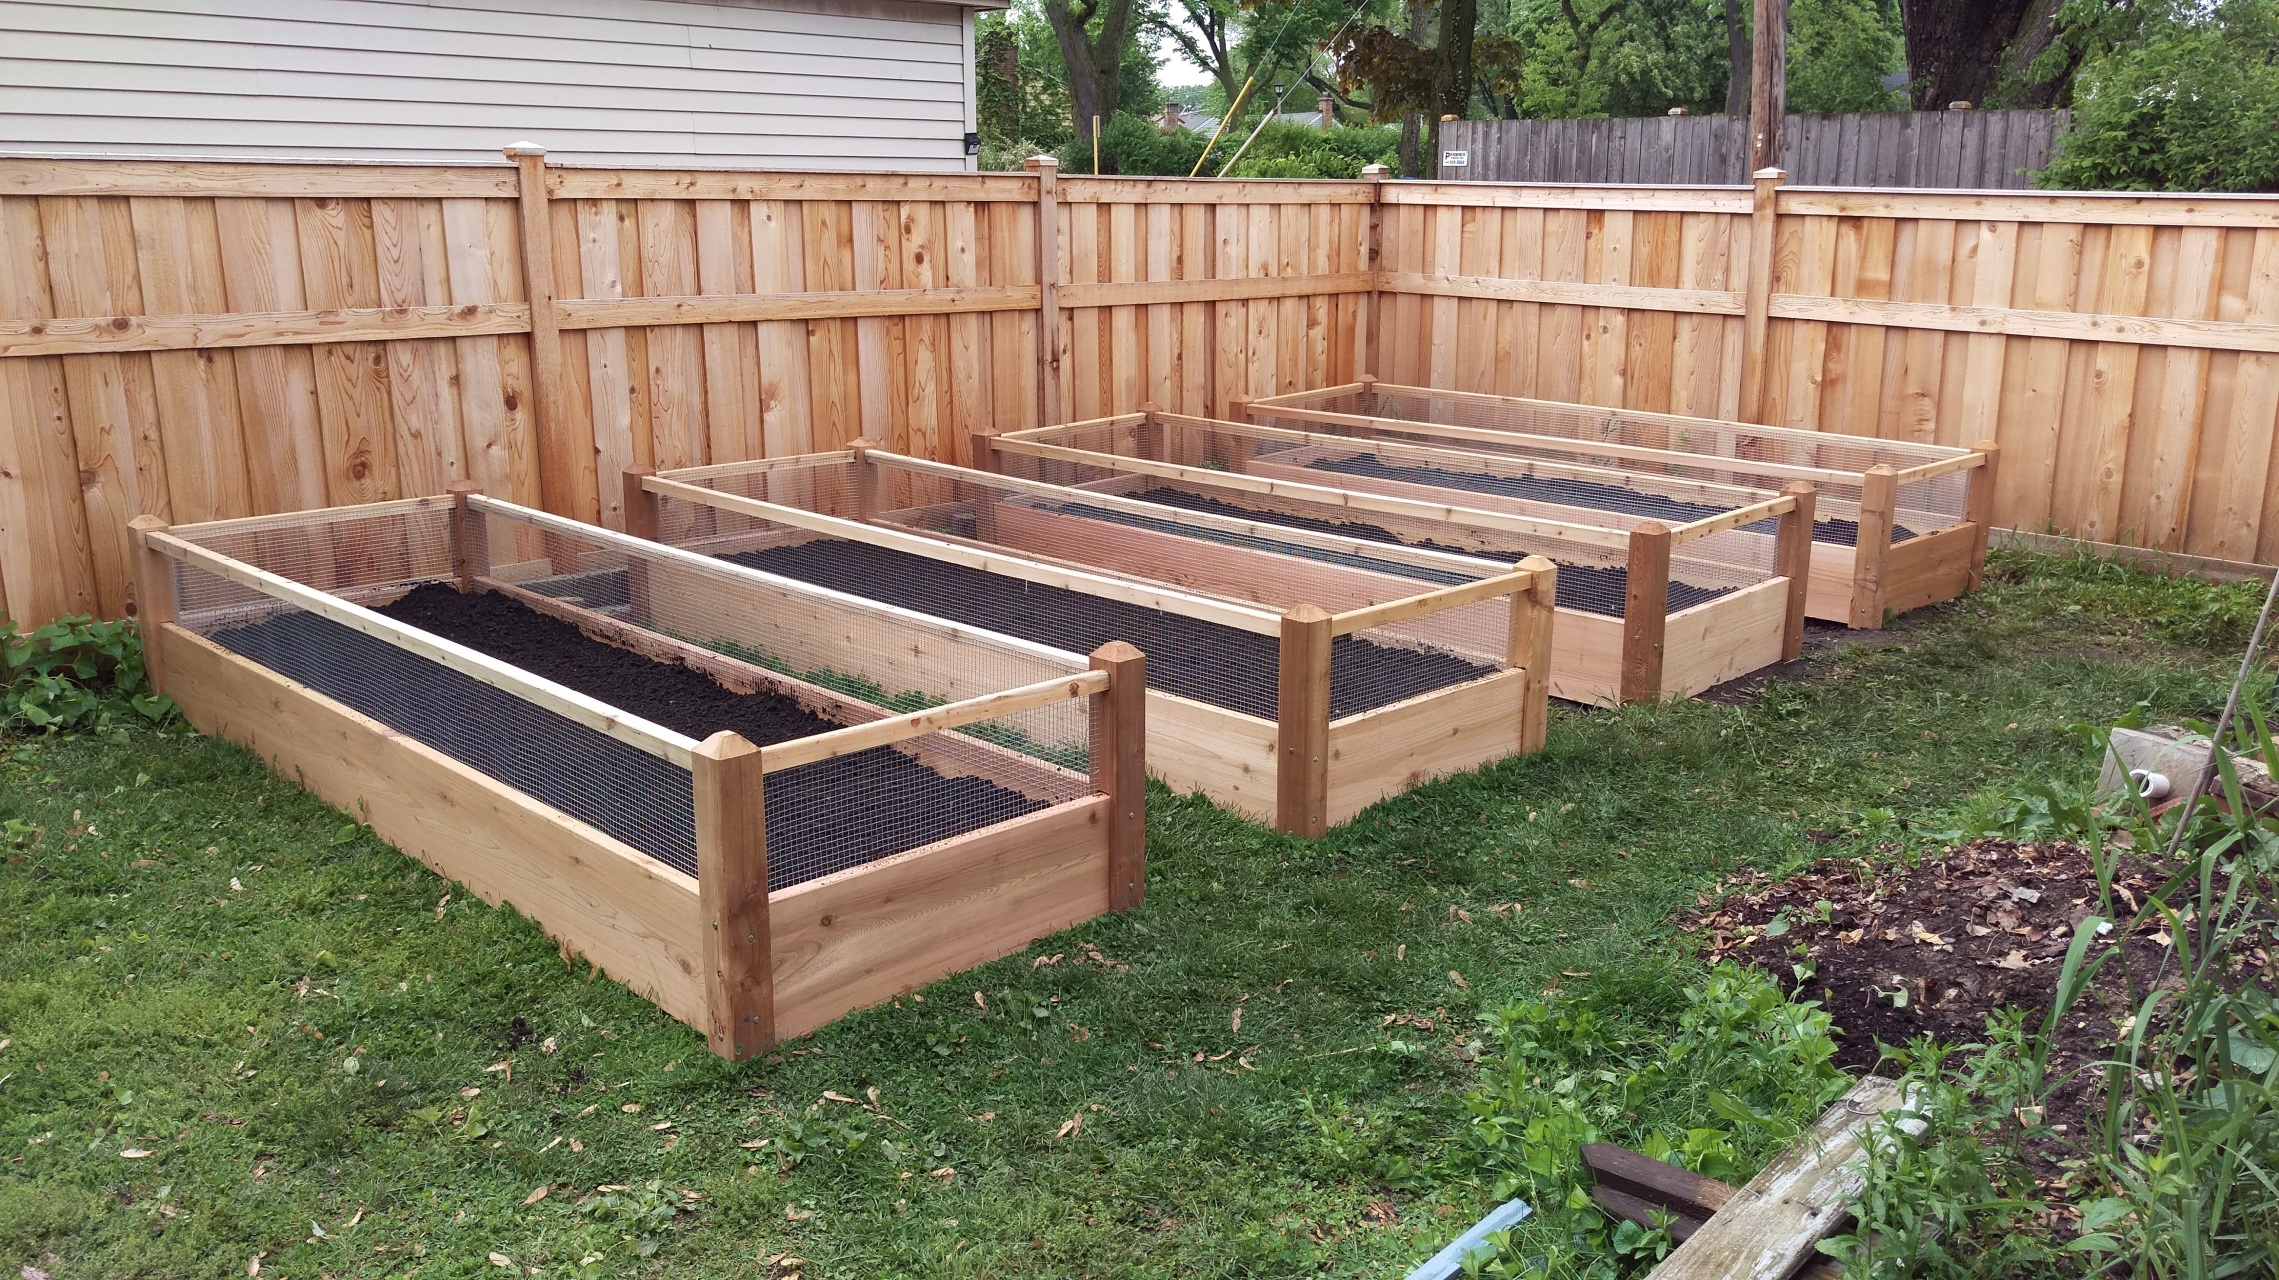 4 Four Raised Bed Gardens 3x8x2